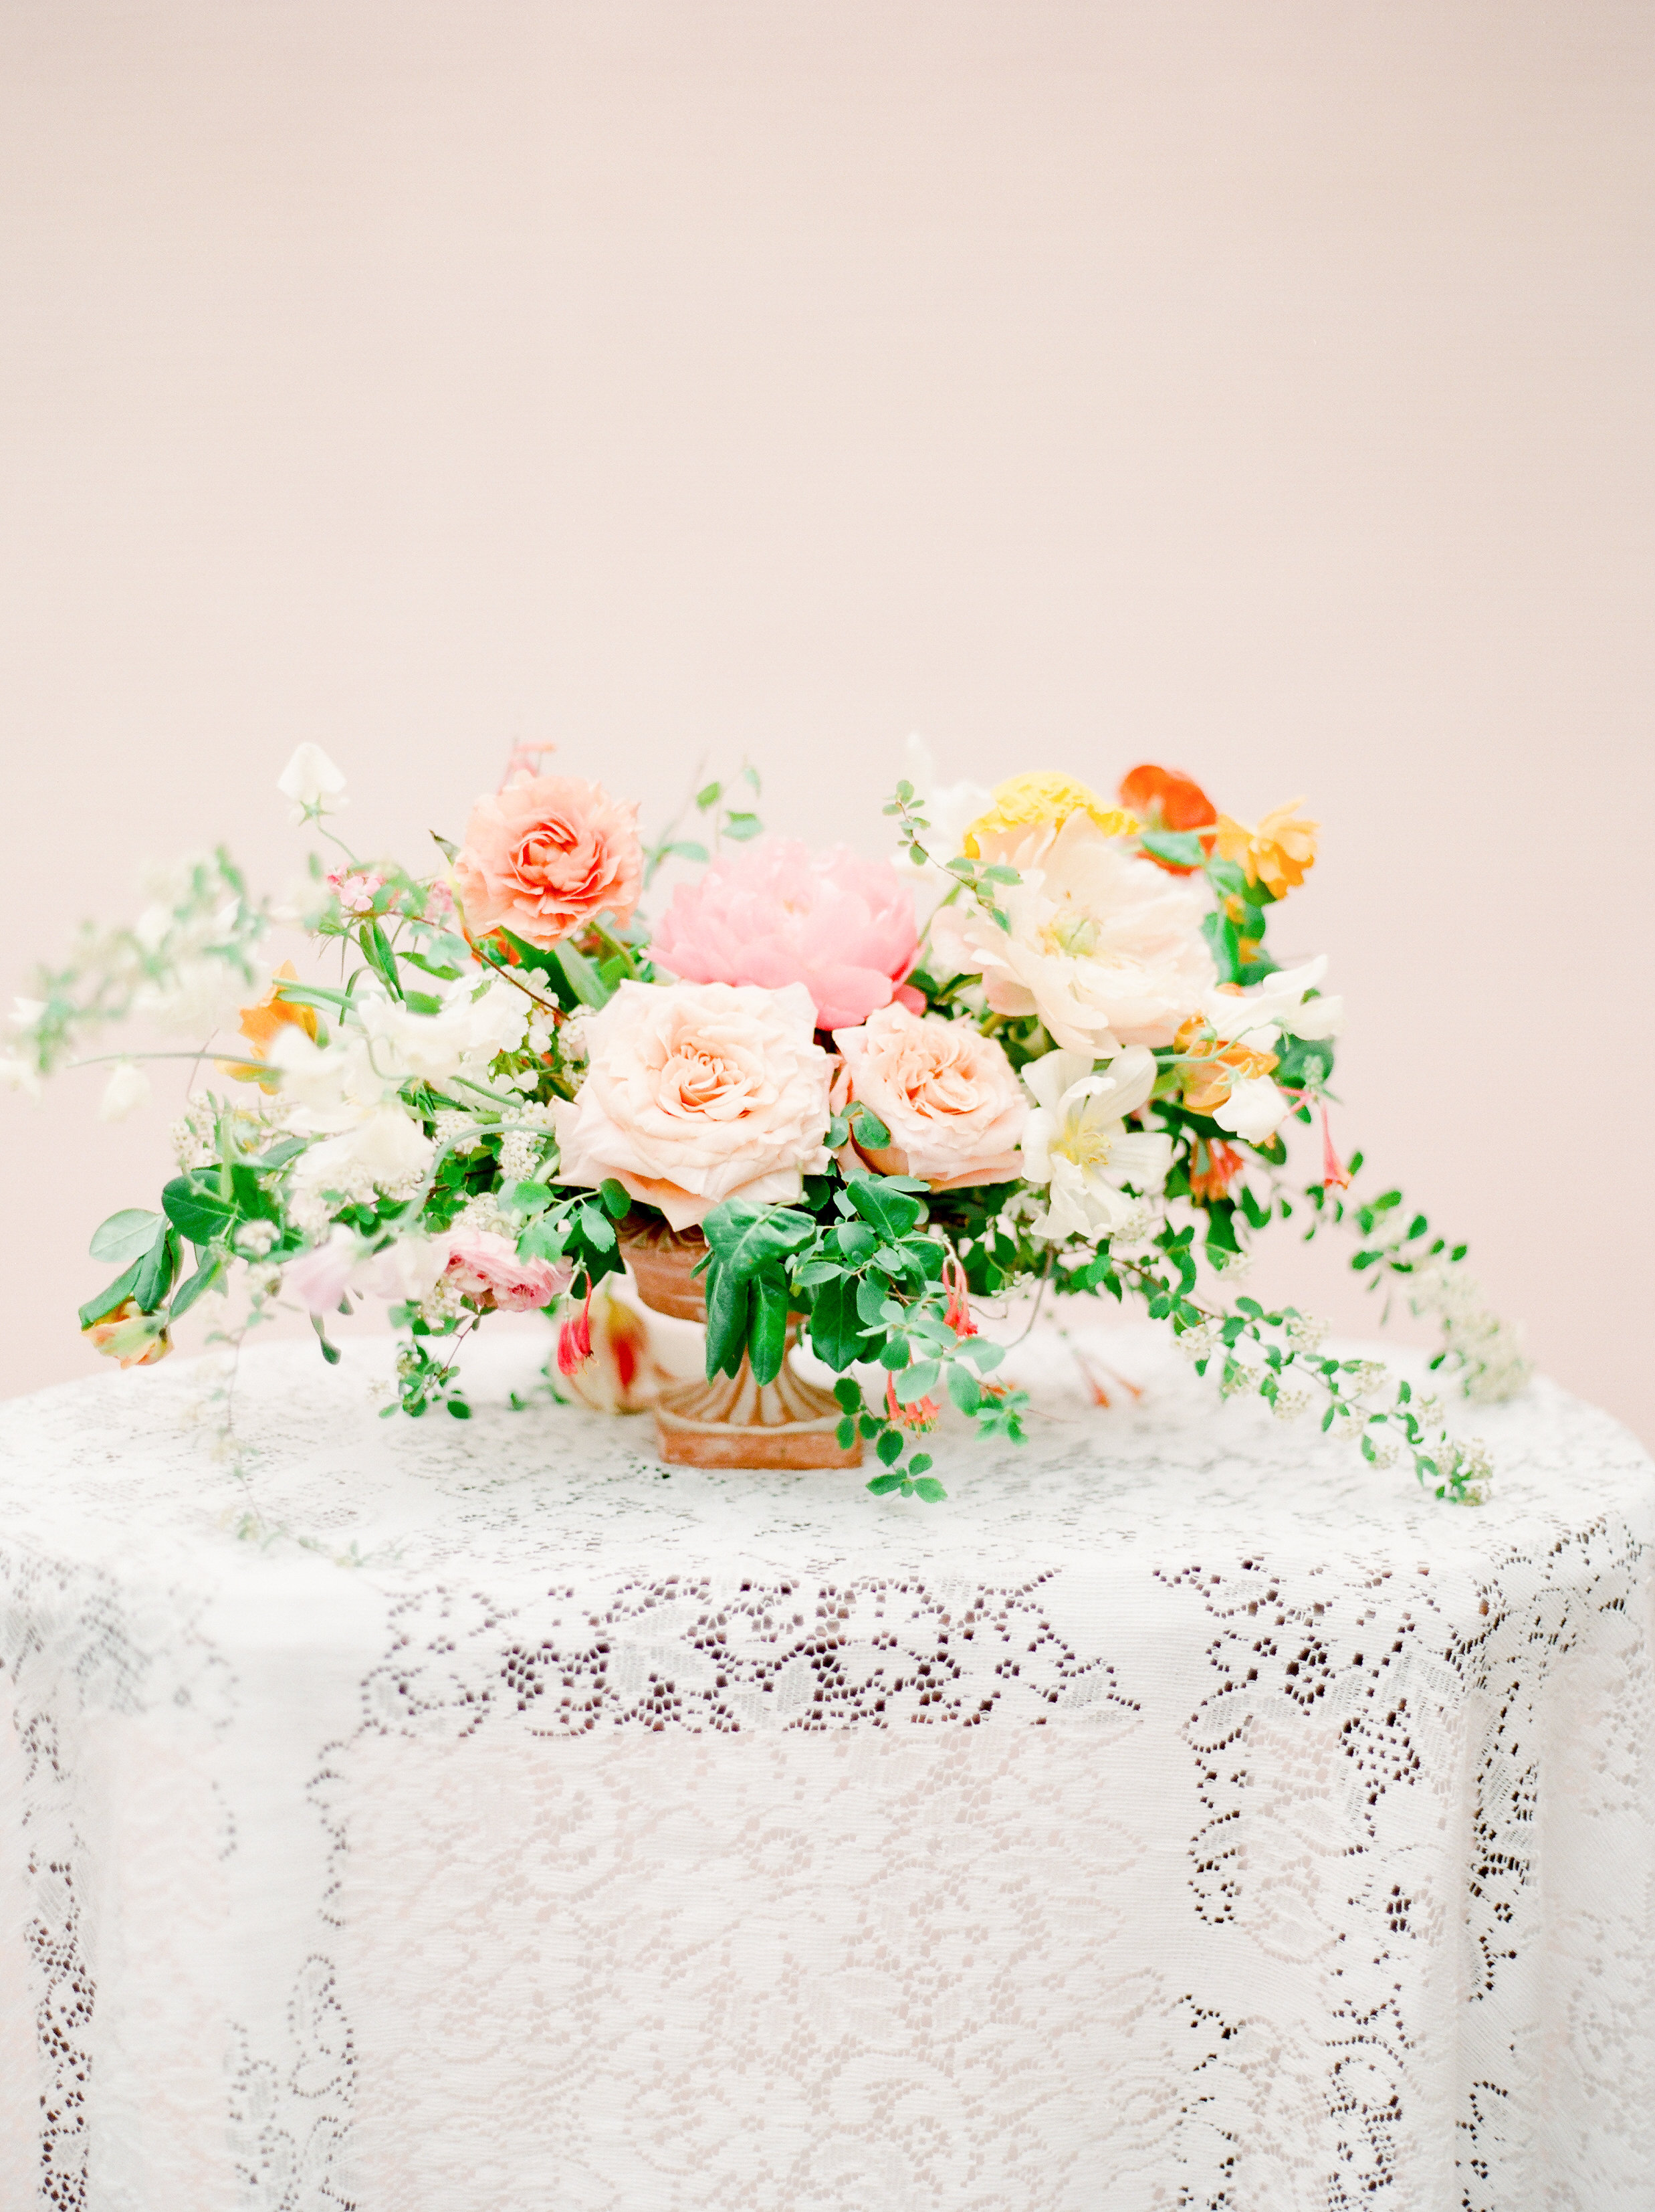 A beautiful floral arrangement paired with a lace overlay creates a beautiful welcome vignette at a wedding. Photo by  Julie Paisley . Exquisite florals by  Petal and Pine . Styling by Feather + Oak.